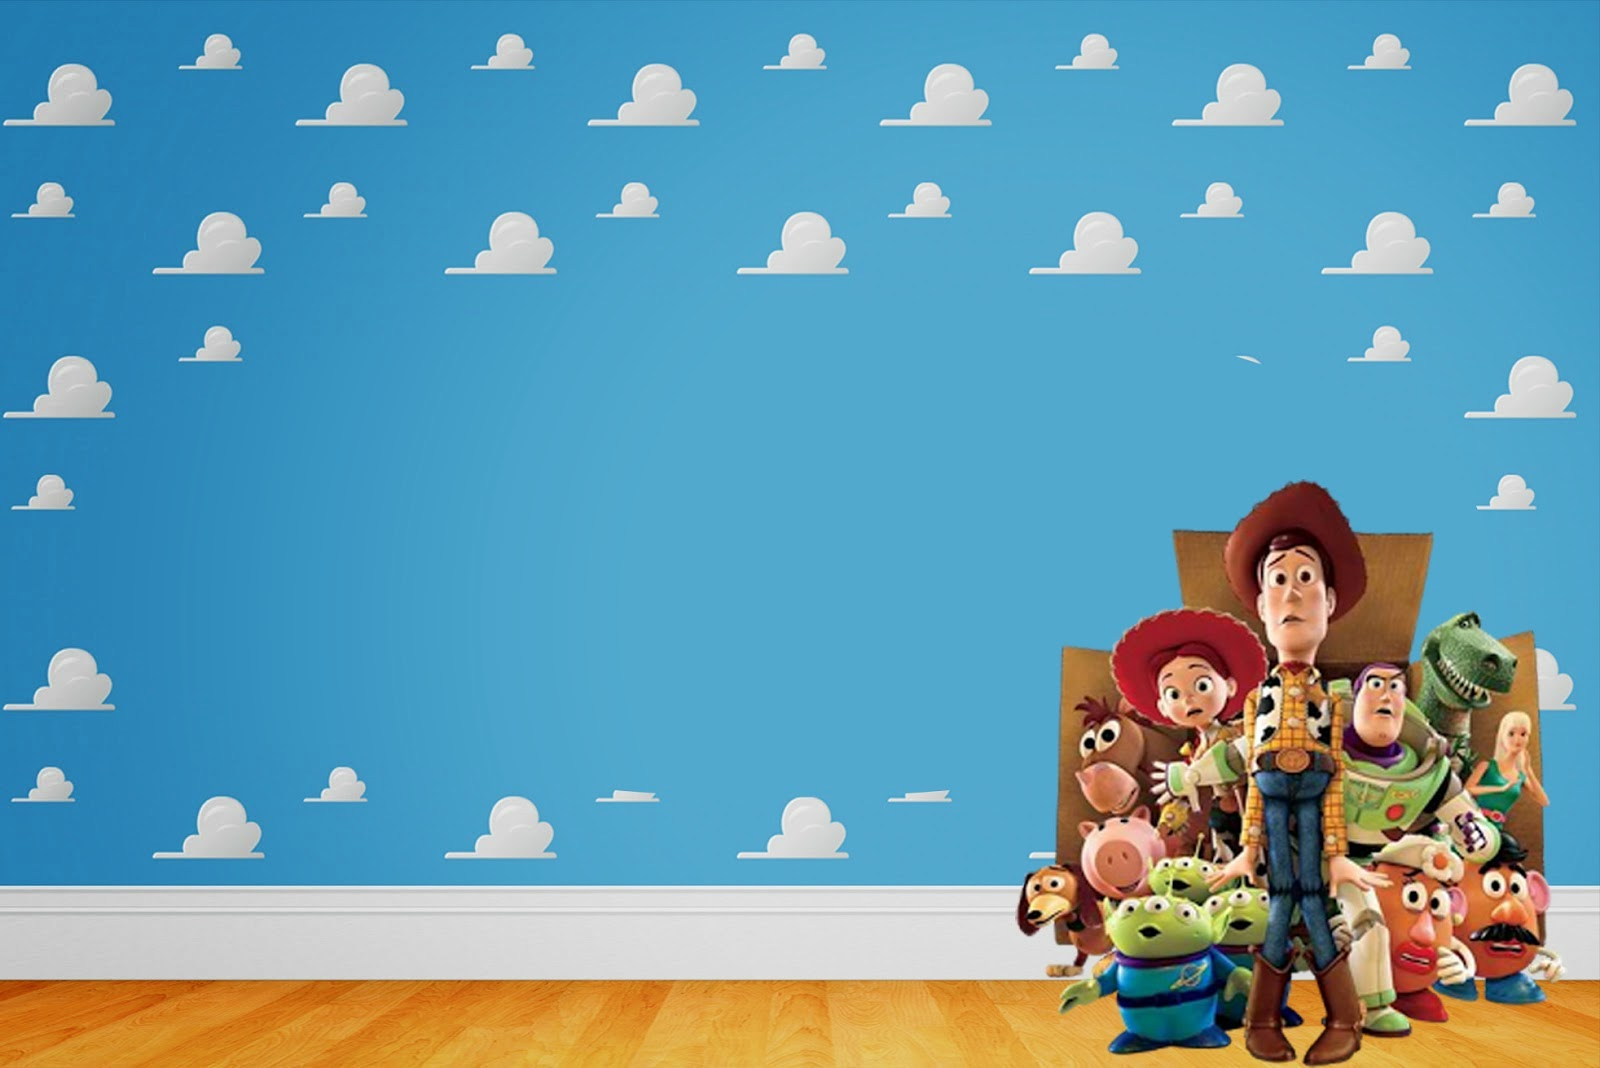 Toy Story Backgrounds (33 Wallpapers) – Adorable Wallpapers